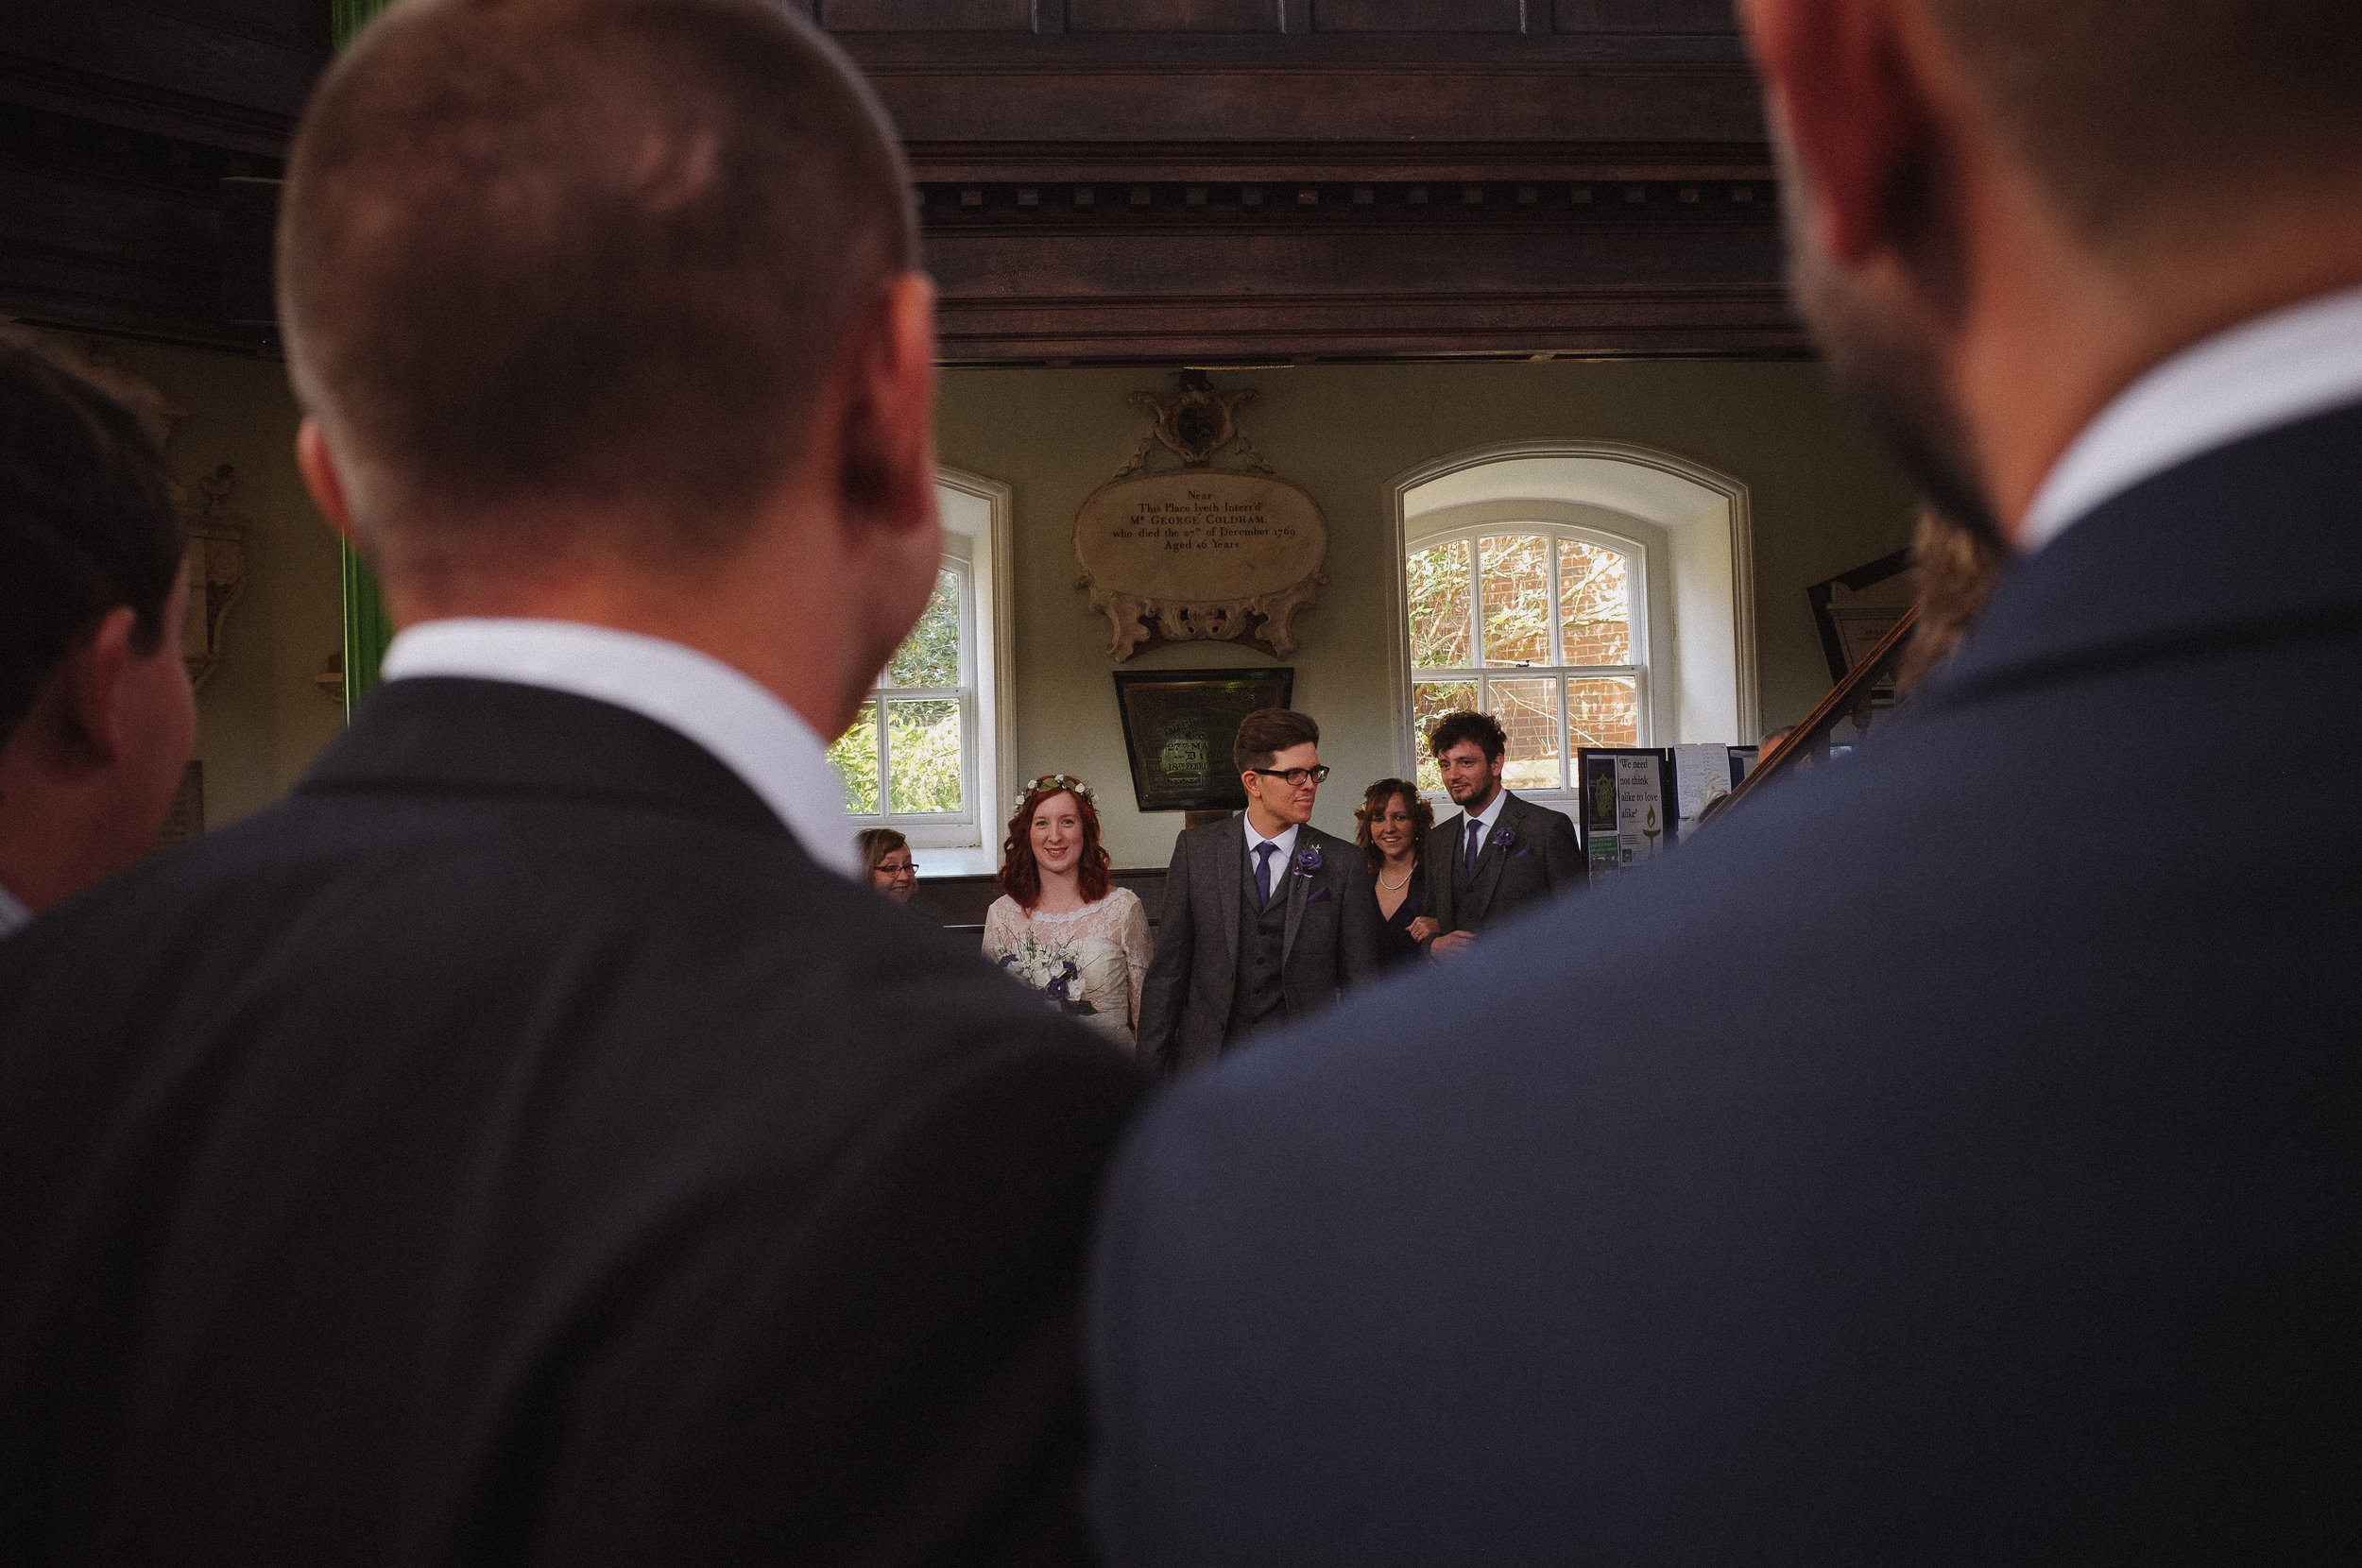 Married couple walking down the aisle at Octagon chapel norwich